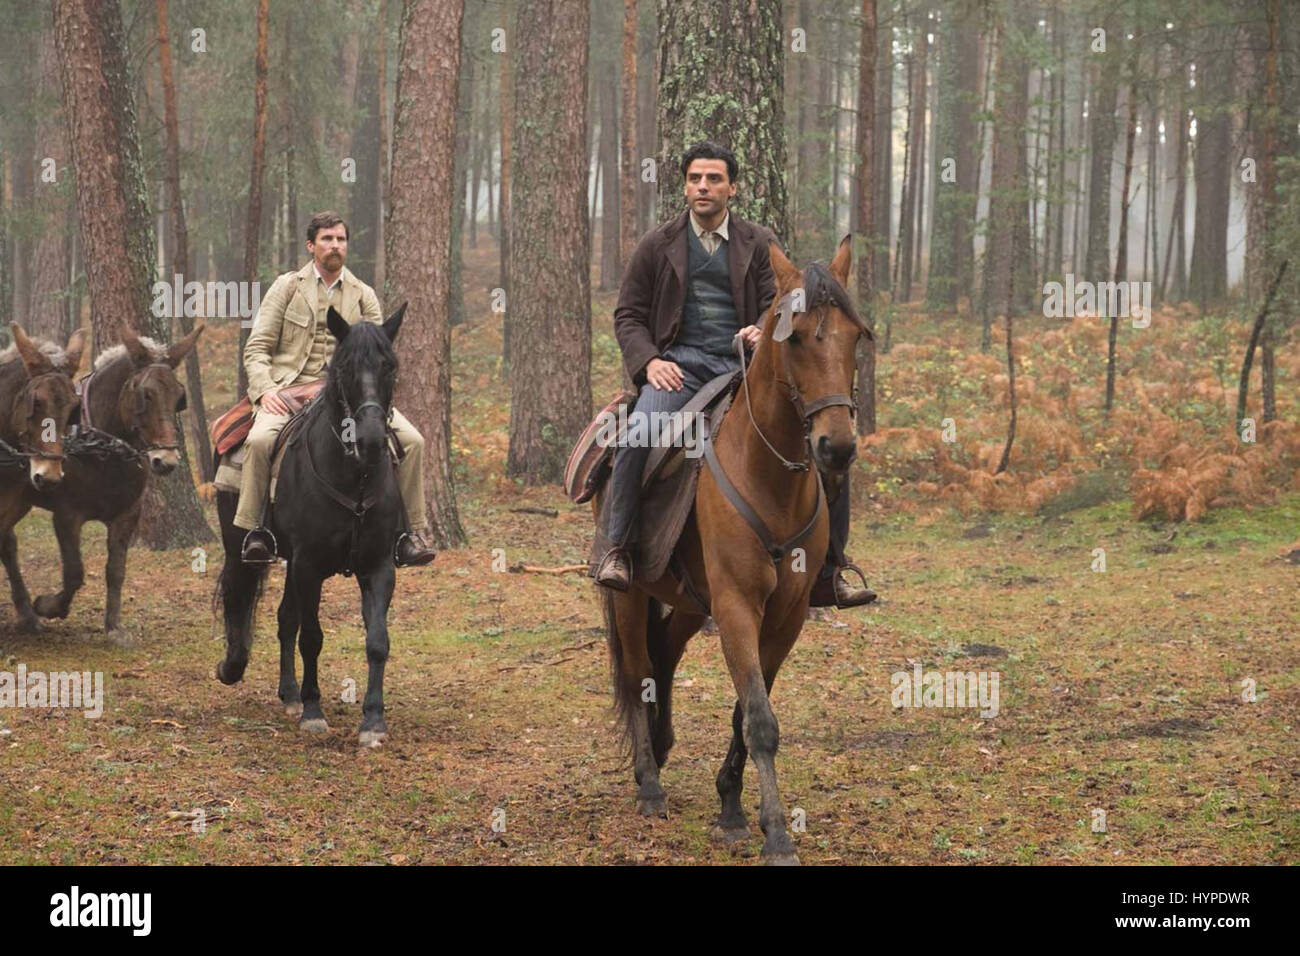 THE PROMISE (2016)  CHRISTIAN BALE  OSCAR ISAAC  TERRY GEORGE (DIR)  SURVIVAL PICTURES/MOVIESTORE COLLECTION LTD - Stock Image